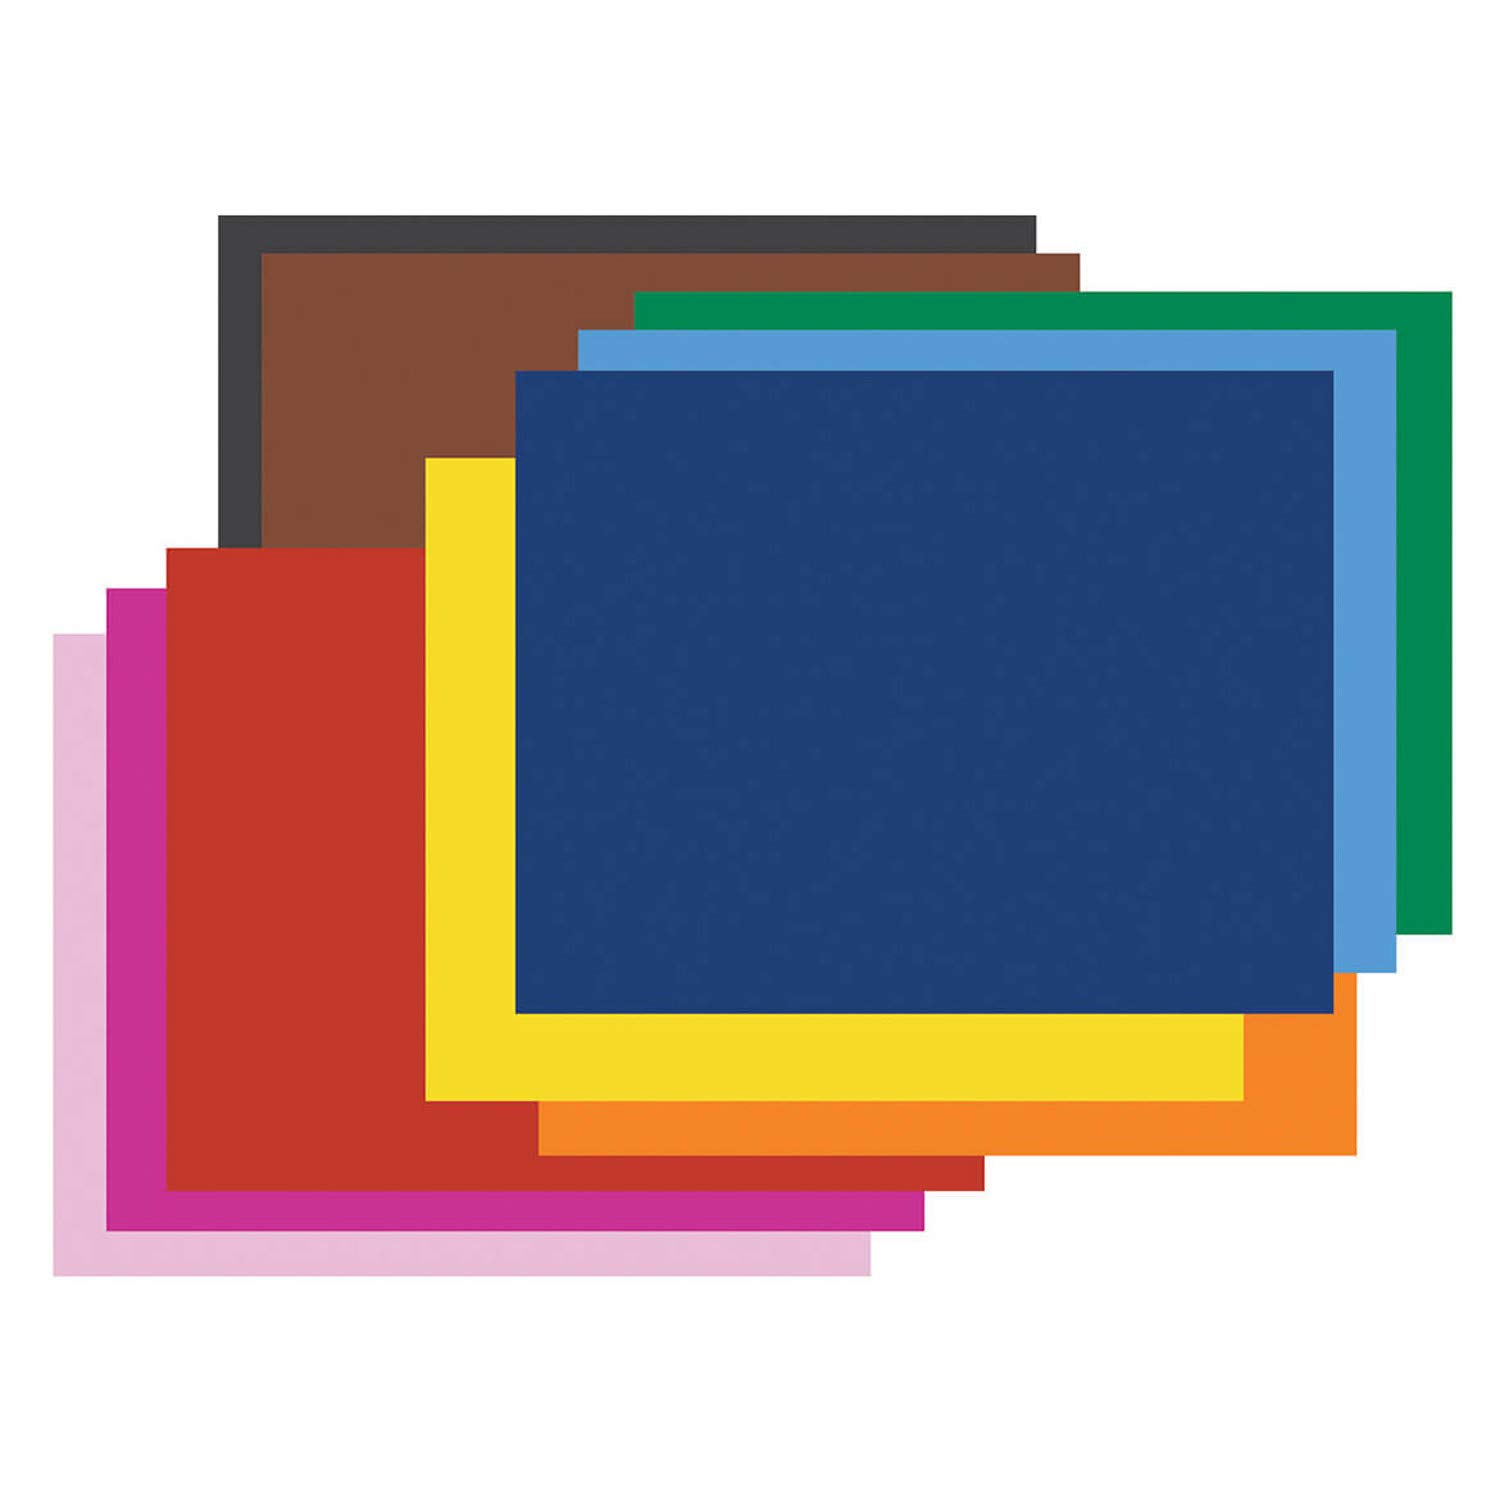 Pacon PAC54872 4-Ply Railroad Board, 10 Assorted Colors, 22'' x 28'', 50 Sheets by Pacon